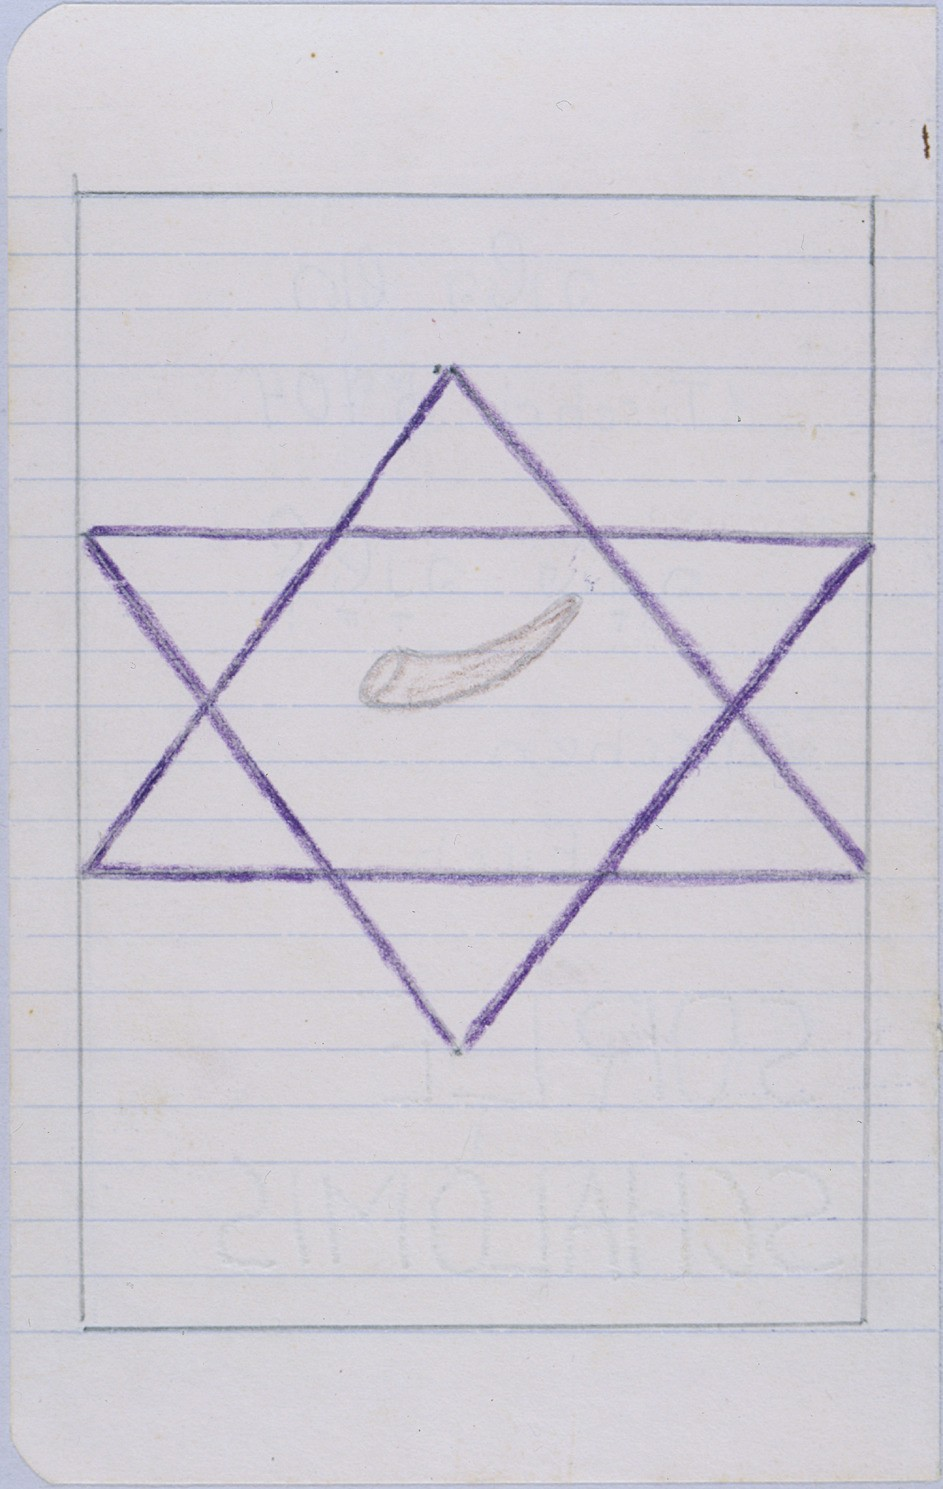 <p>Sorle and Shalomis Gorfinkel presented this card to their parents on the occasion of Rosh Hashanah 5704, the Jewish New Year 1943. The Gorfinkel family was part of the Mir Yeshiva community in Shanghai.</p>